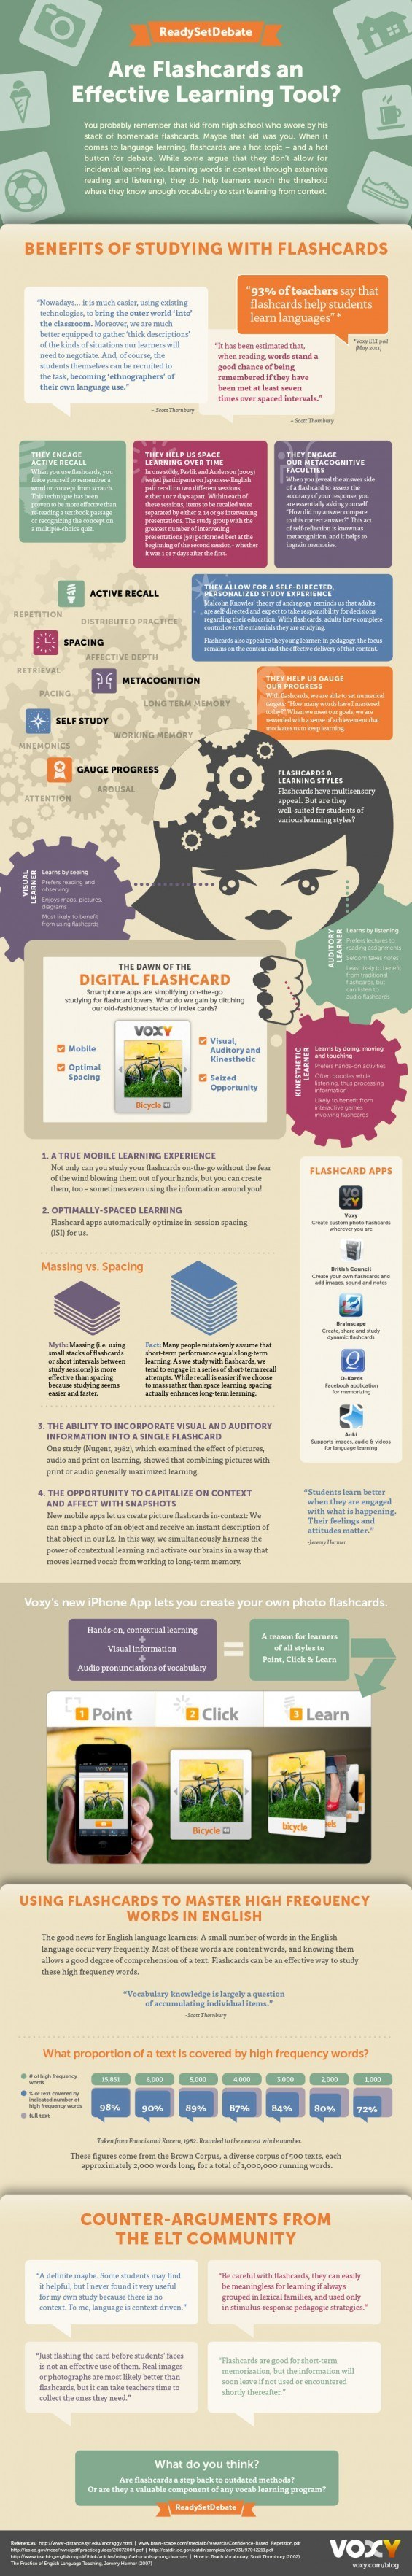 Why-Use-Flashcards-as-a-Learning-Tool-Infographic